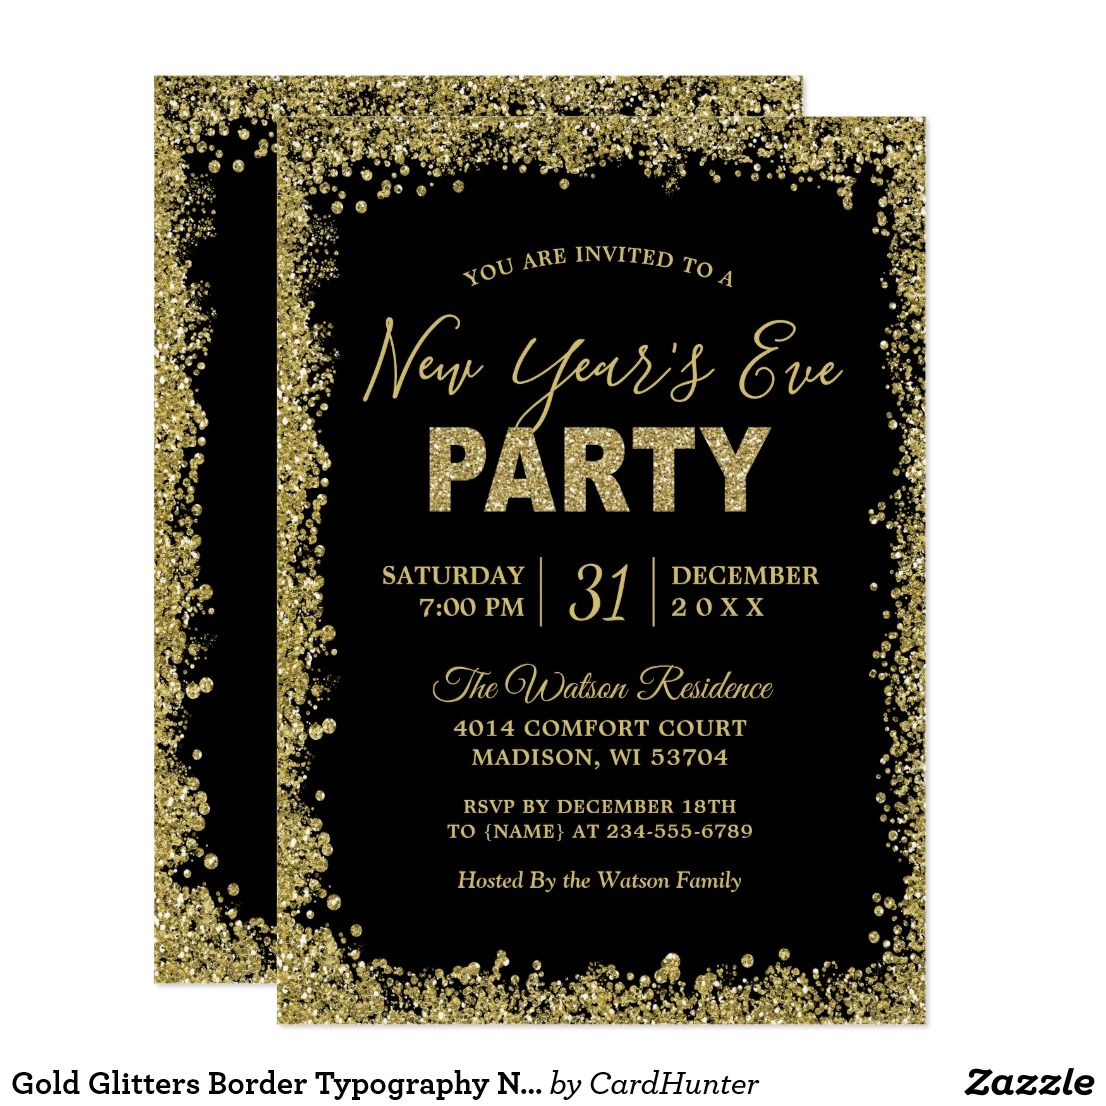 gold glitters border typography new years party card gold glitters border typography new years eve party invitation 1 for further customization